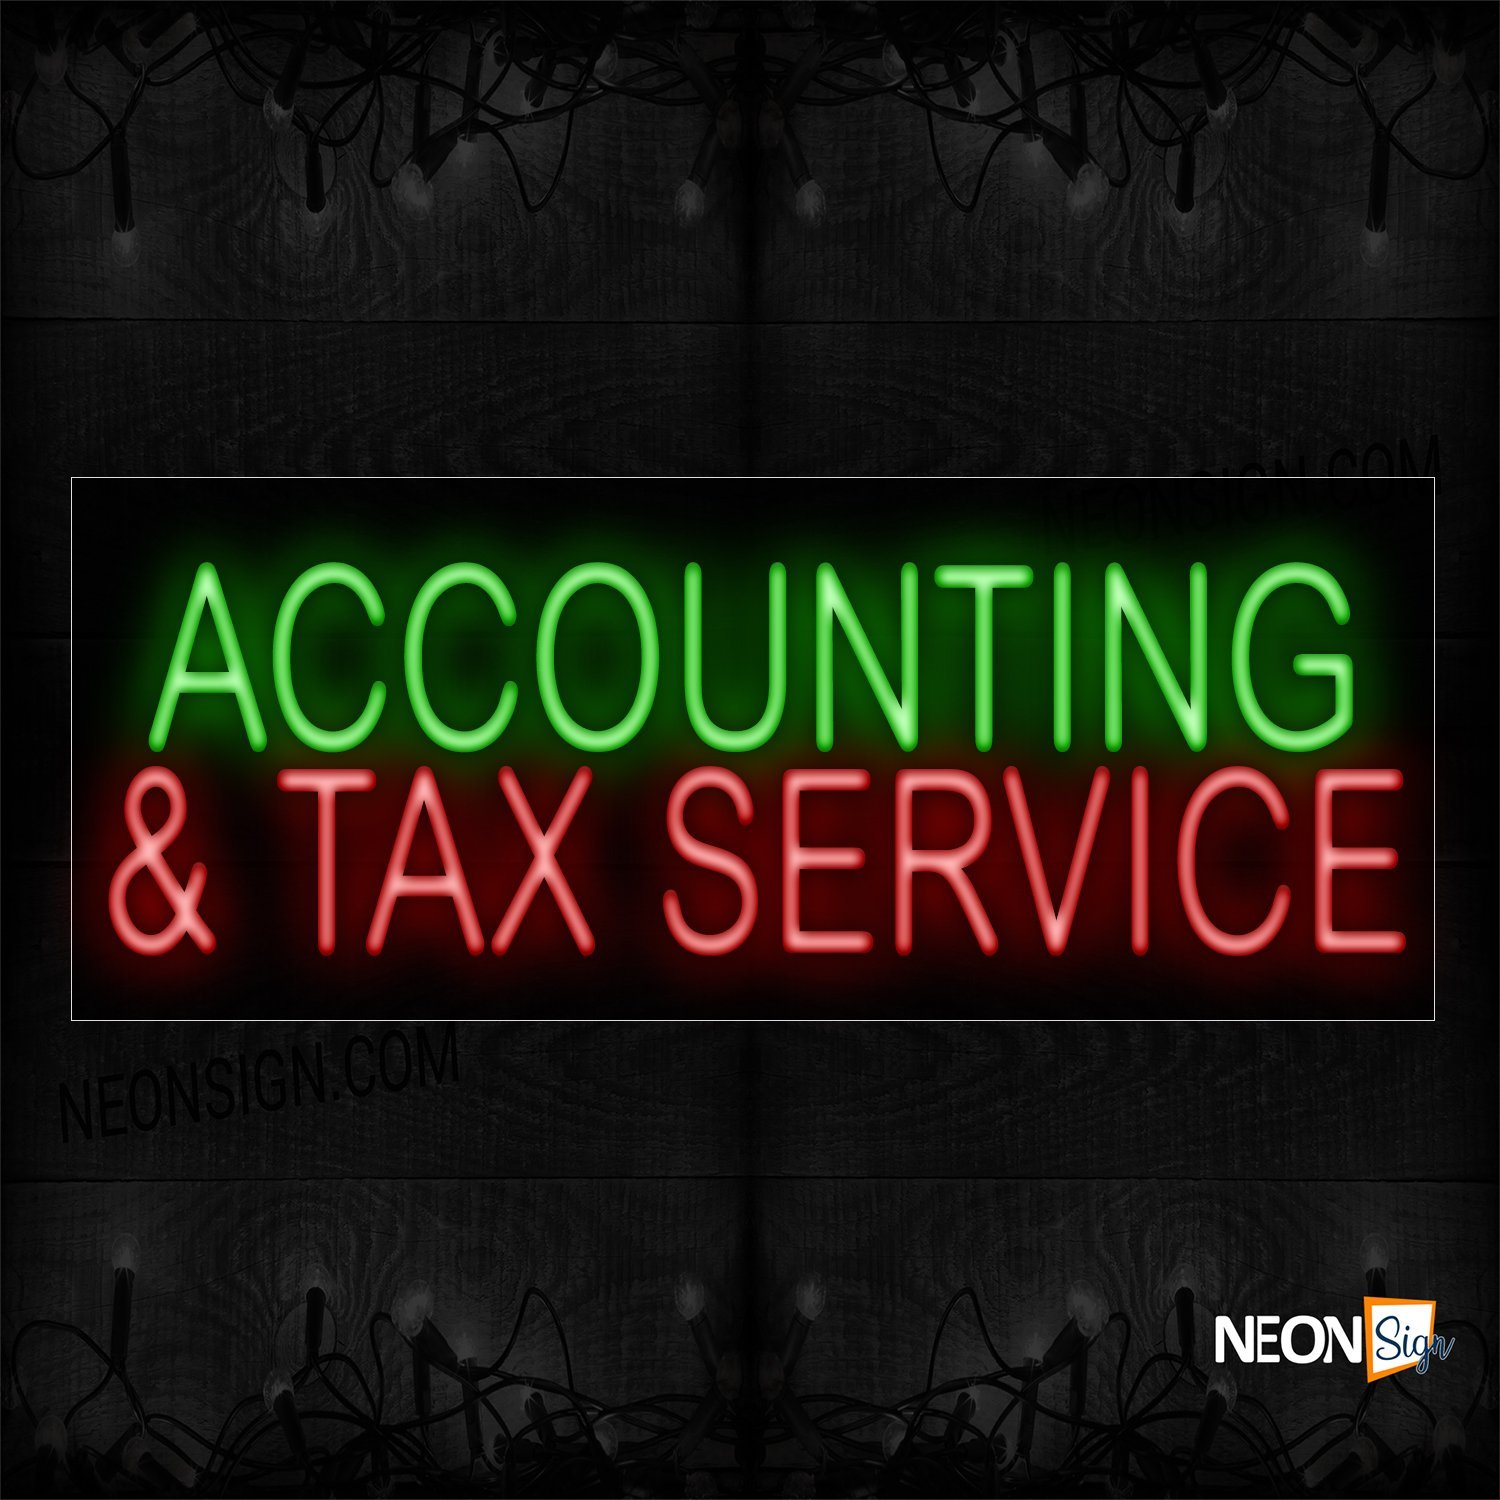 Image of 11346 Accounting & Tax Service Neon Sign_13x32 Black Backing